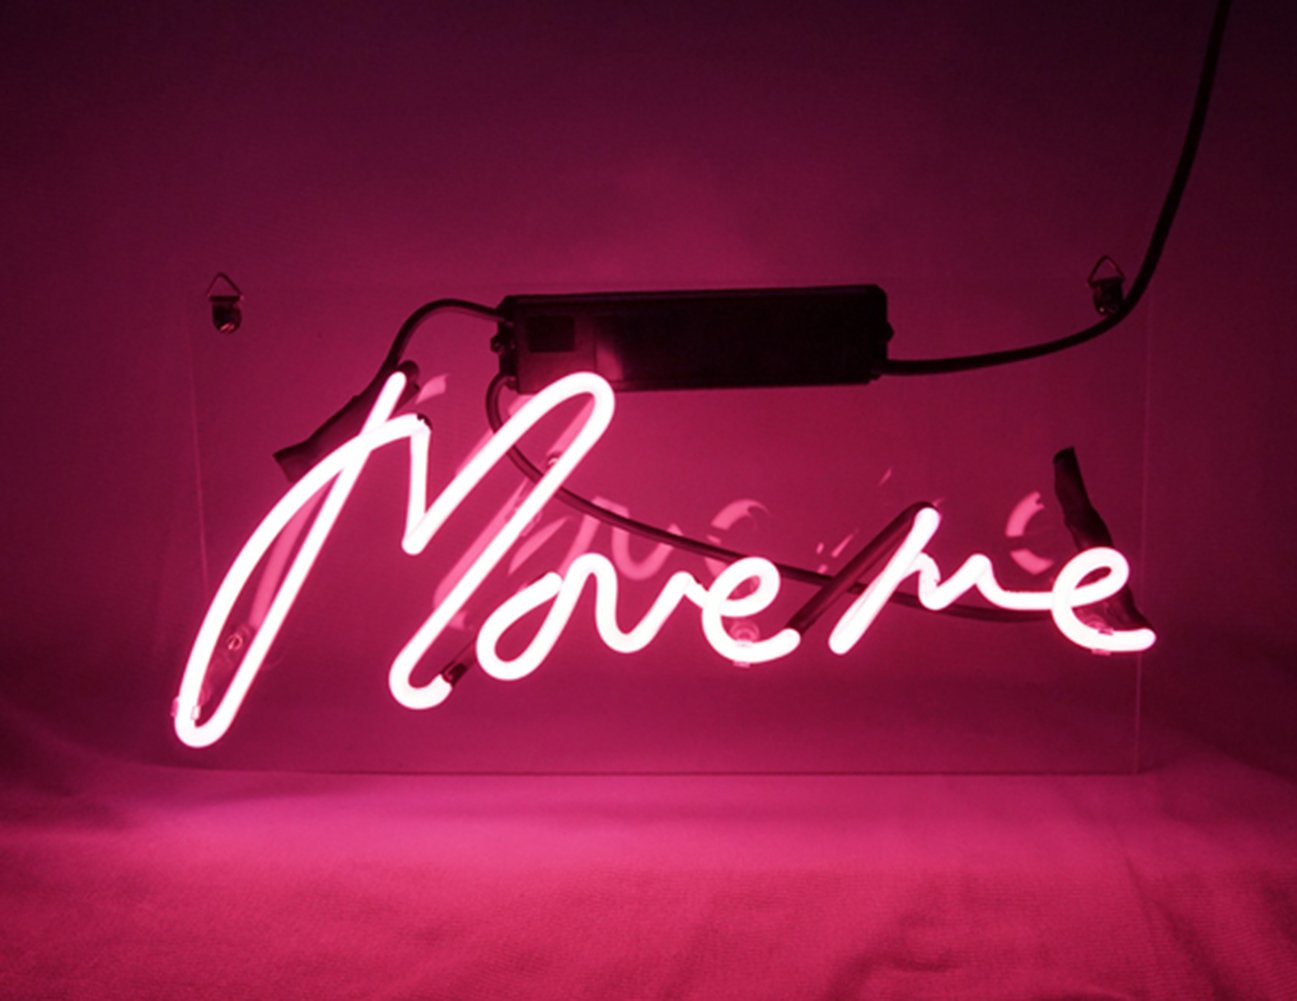 New Neon Sign Pink 'Move Me' Cool Led Lamp Light Decoration 12.6